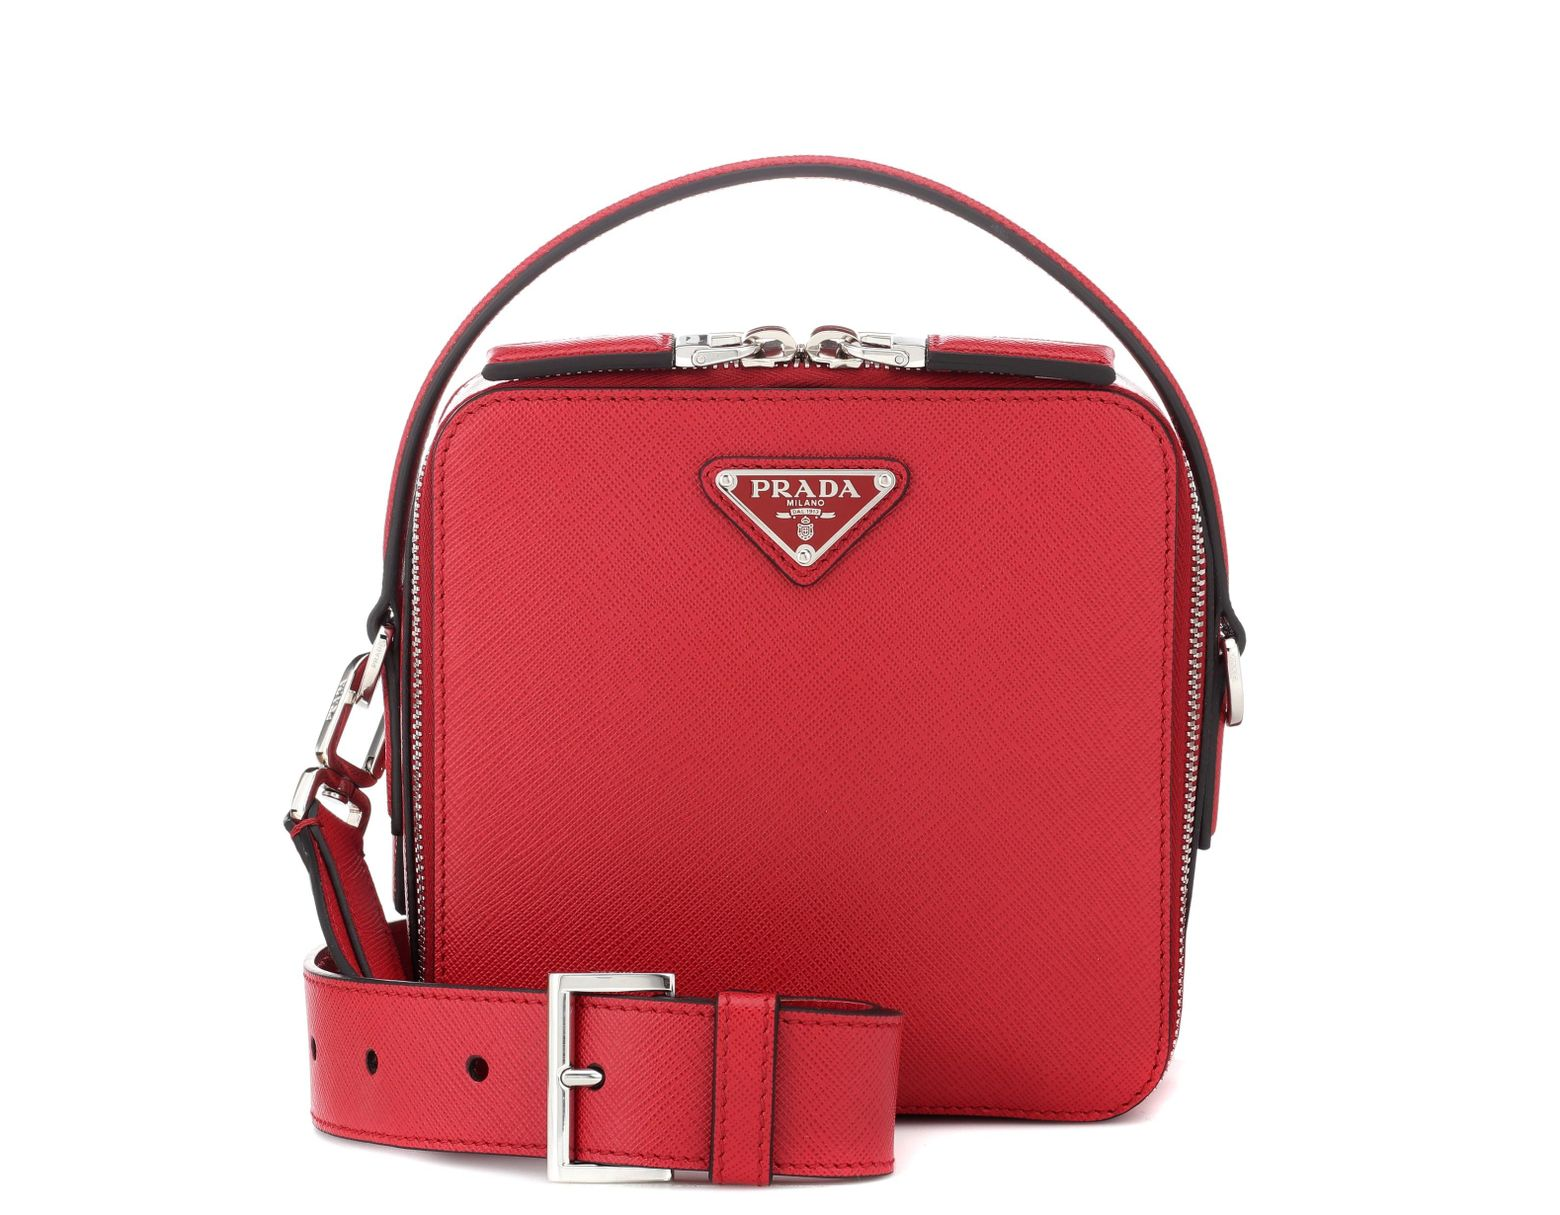 268c31822843 Prada Brique Leather Crossbody Bag in Red - Lyst